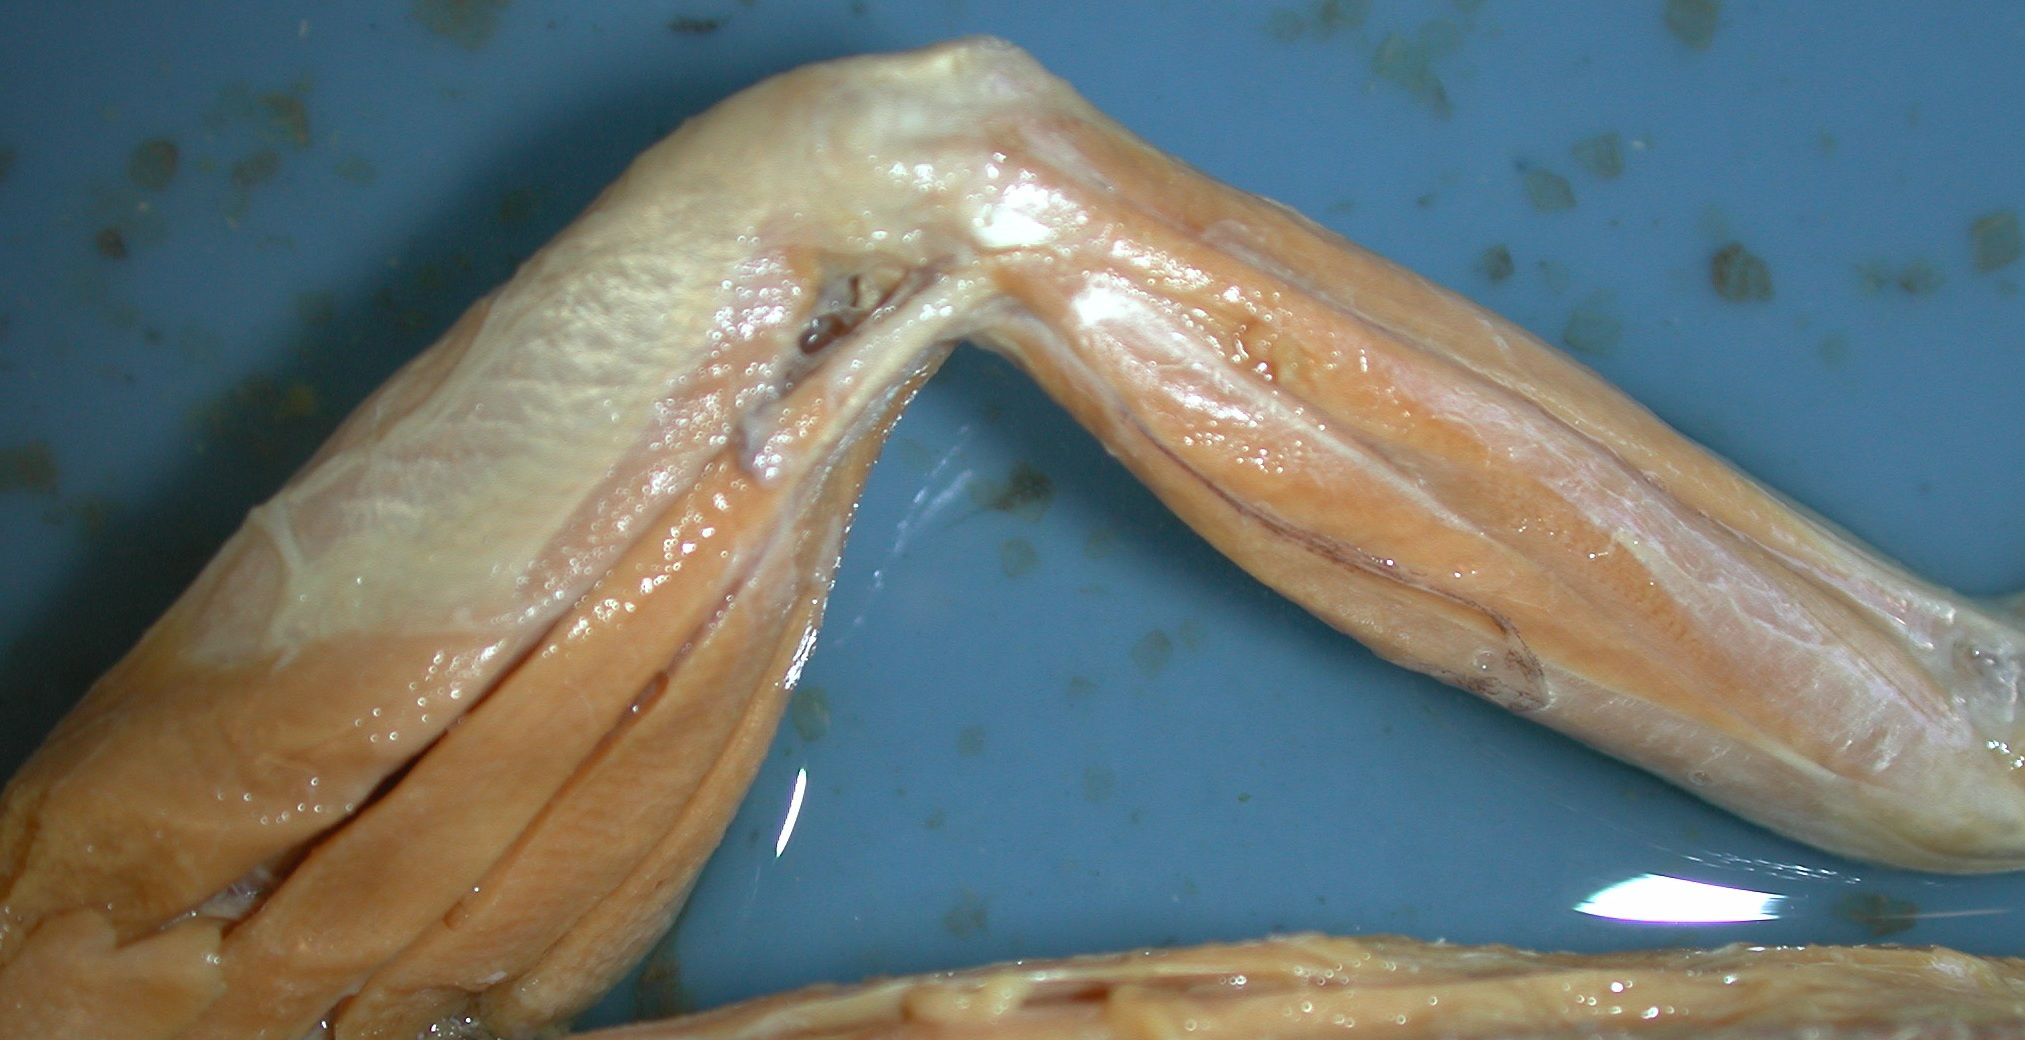 Mystery Dissection Whats In Johns Freezer Chicken Leg Diagram For Pinterest 9